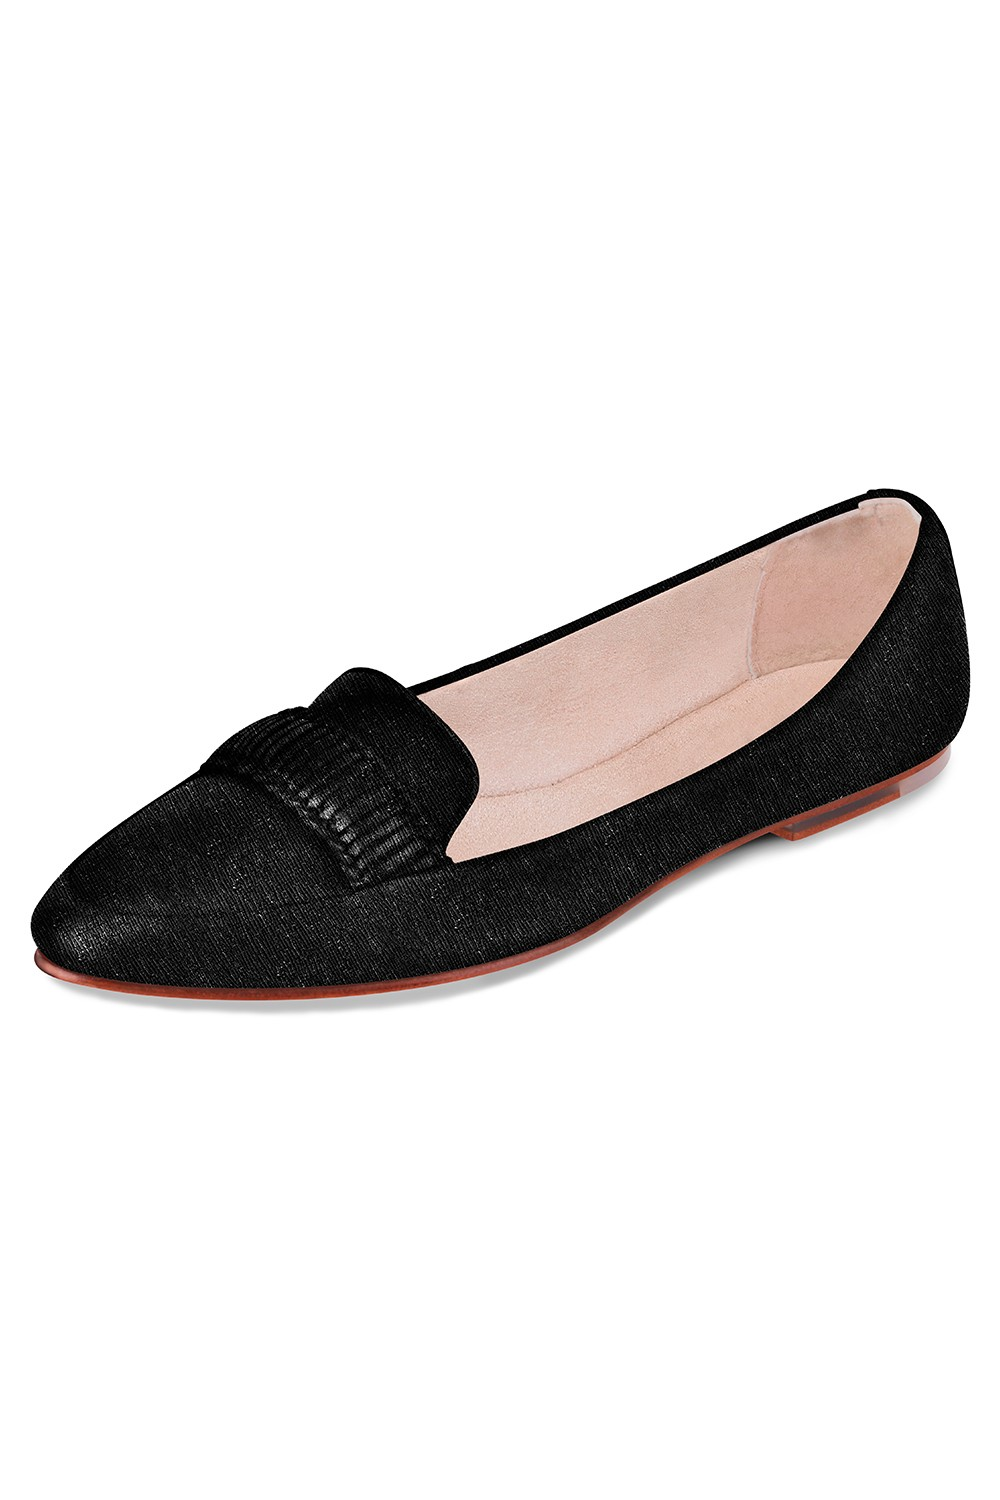 Briana Ladies Ballet Flat Womens Fashion Shoes